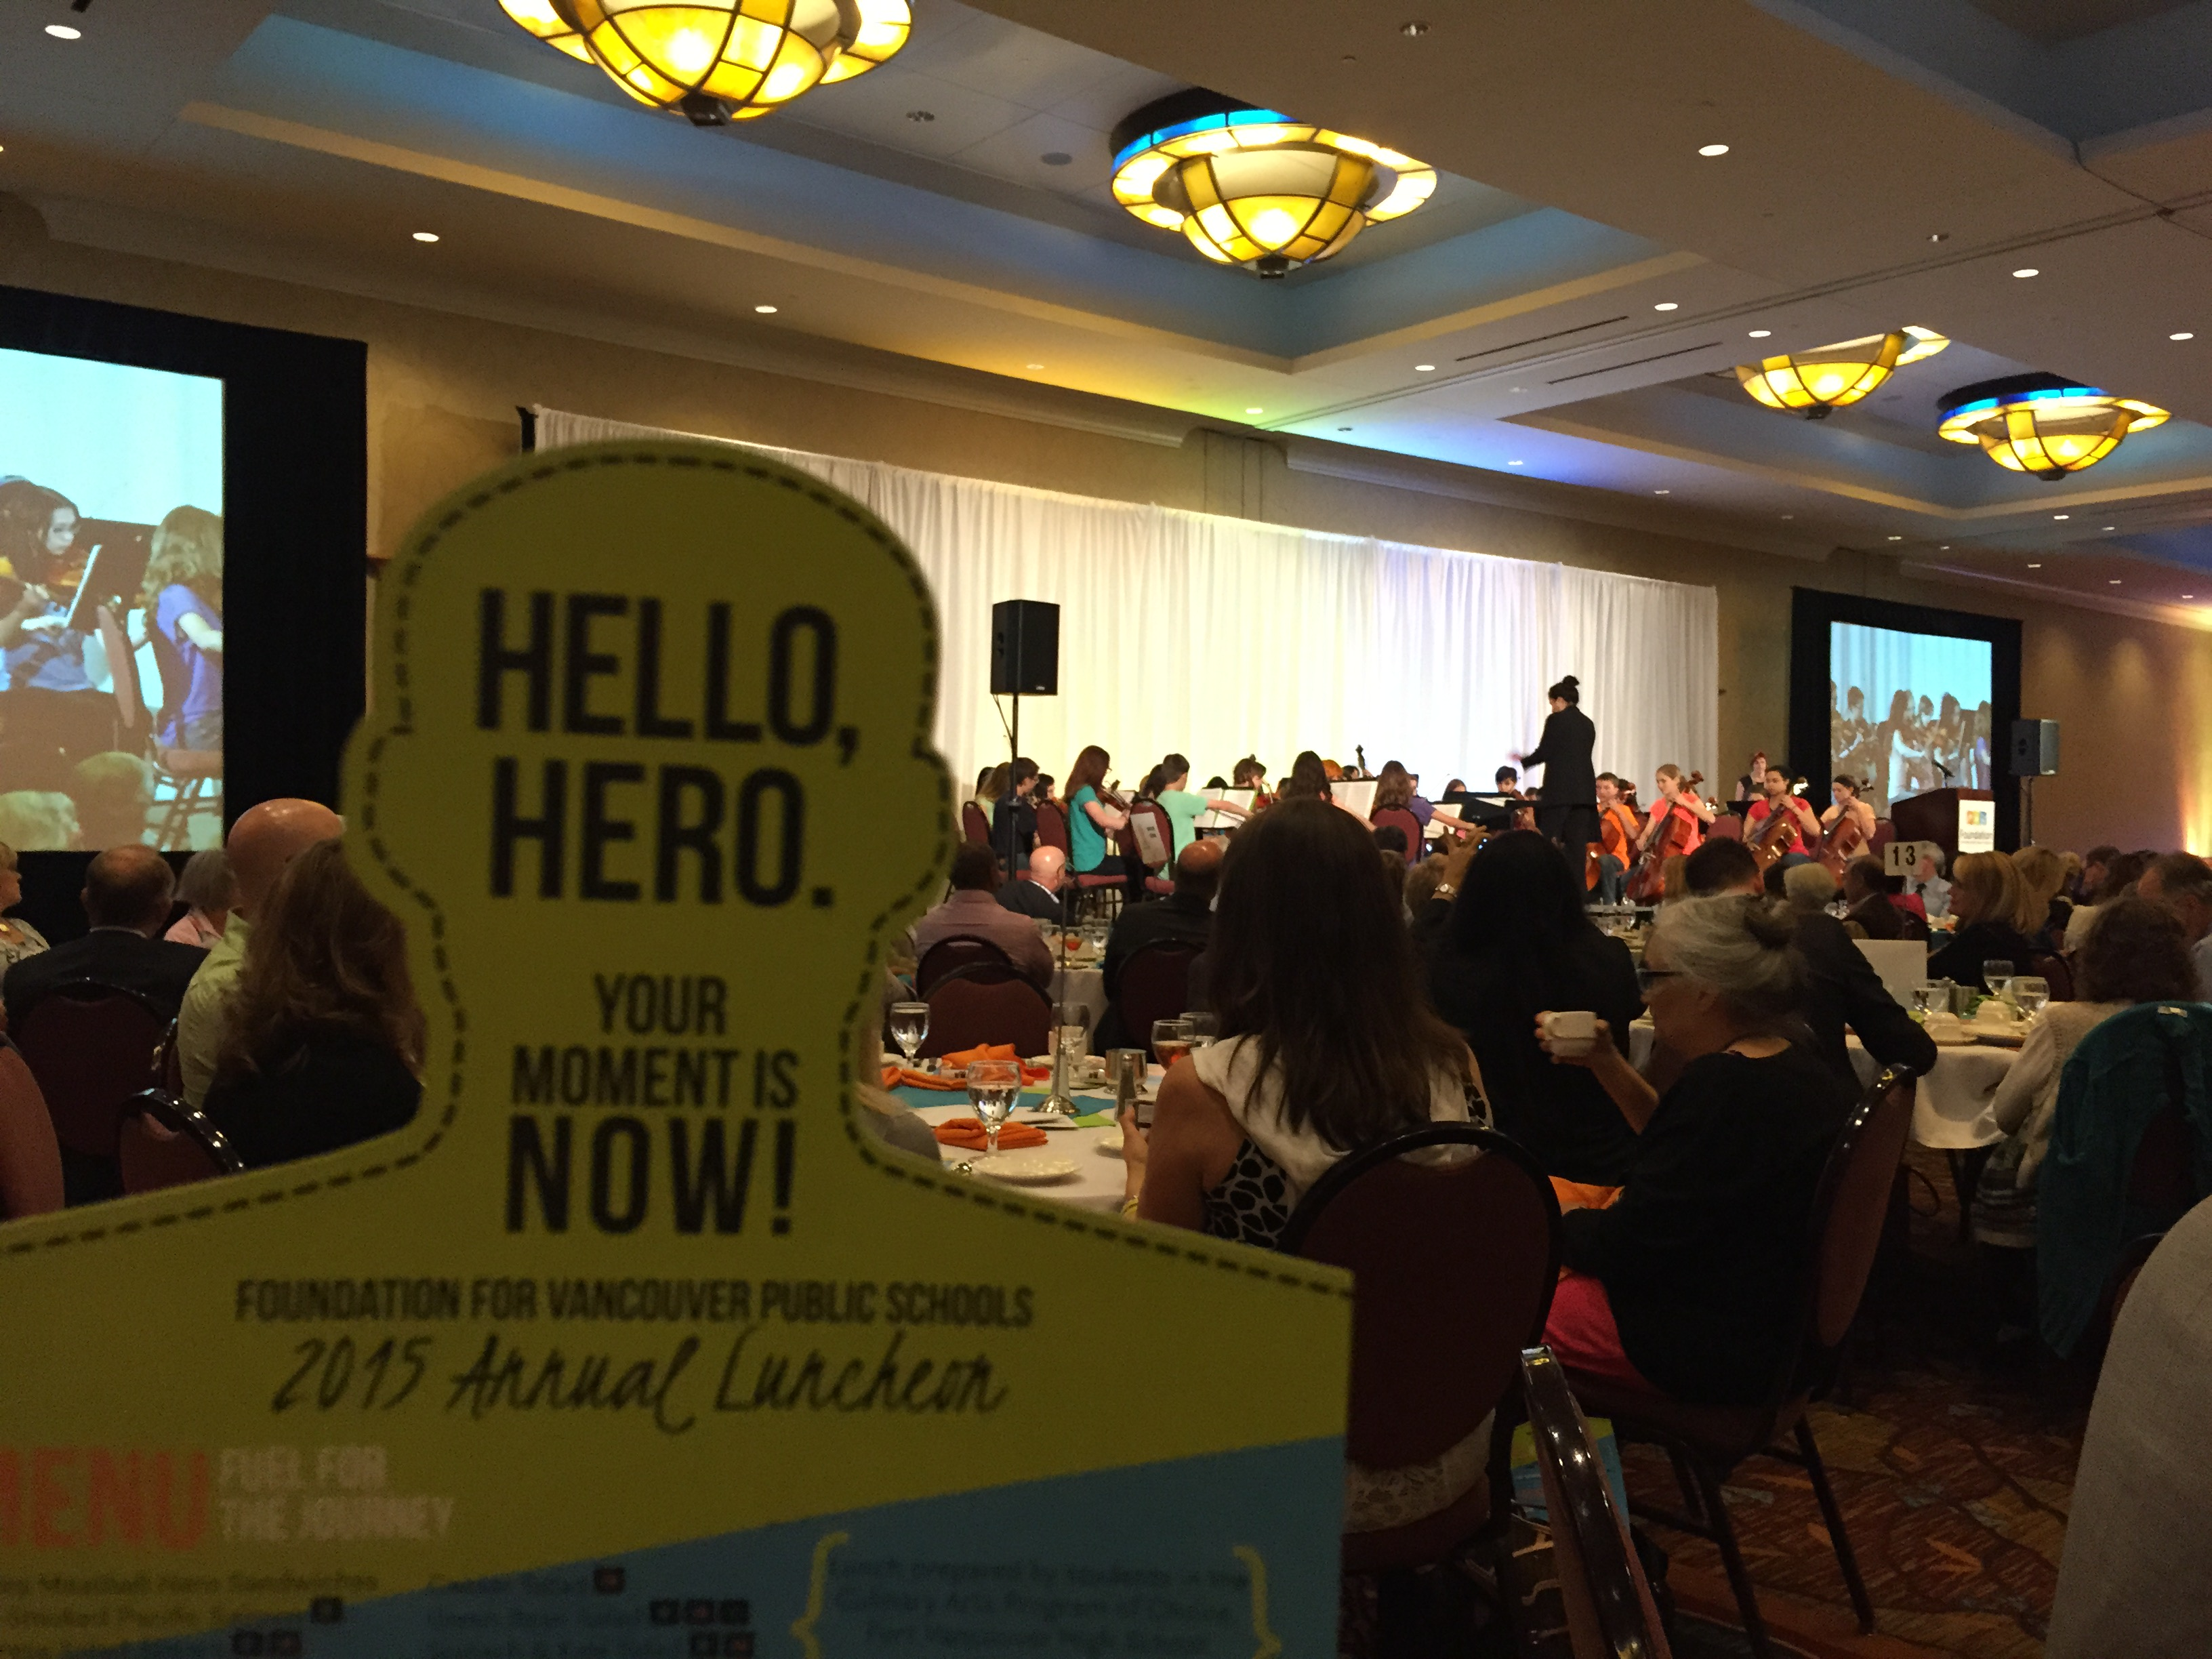 Foundation for Vancouver Public Schools Heros Luncheon